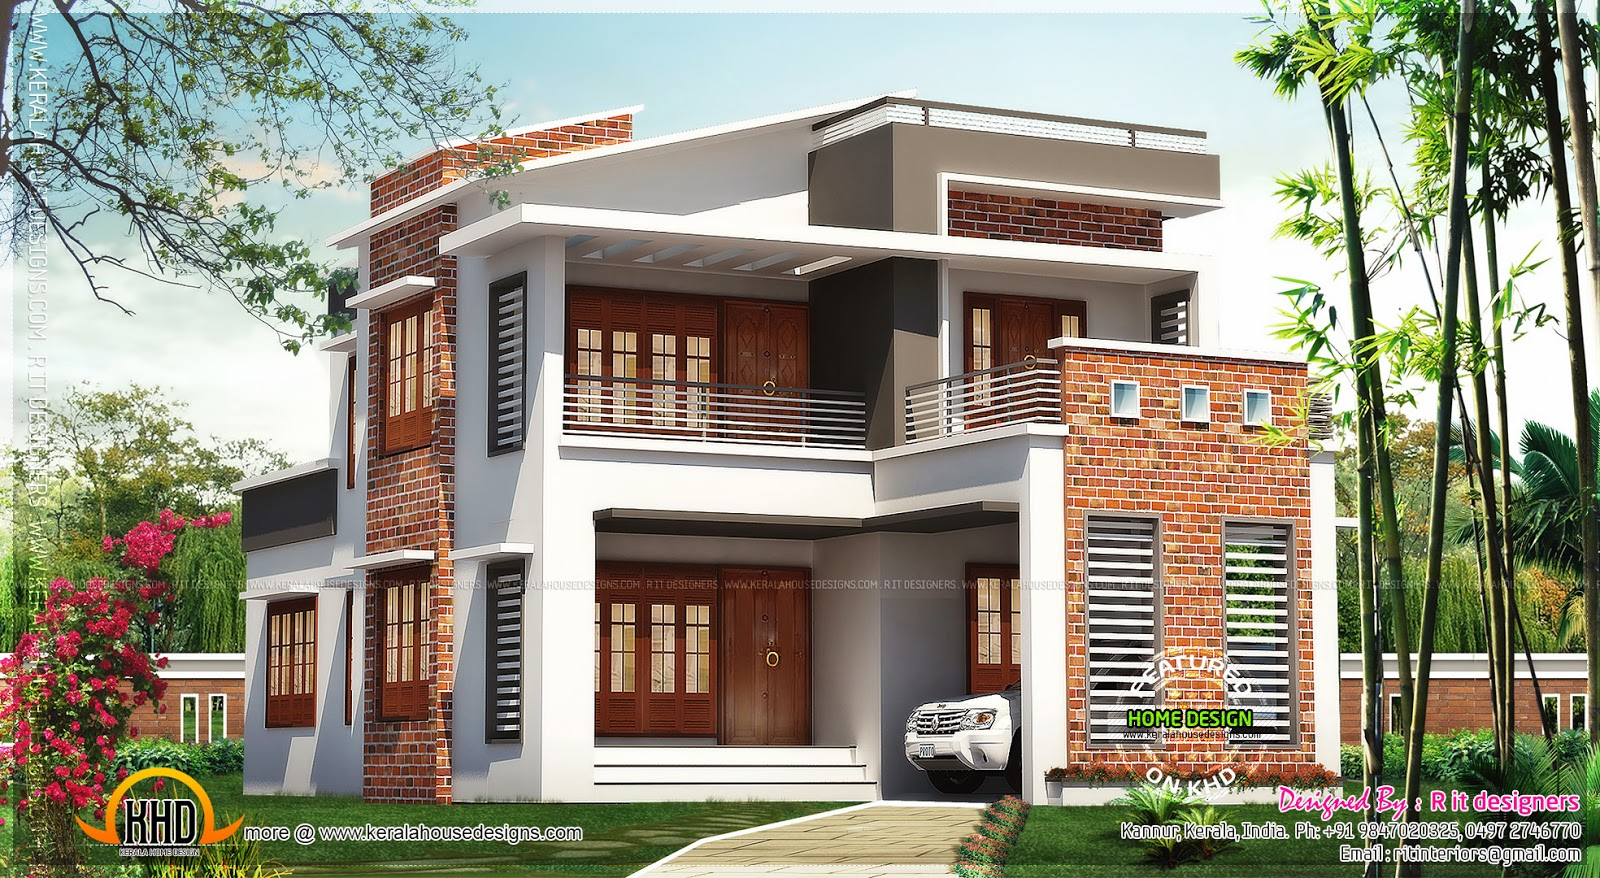 Brick mix house exterior design kerala home design and for Best front design of home